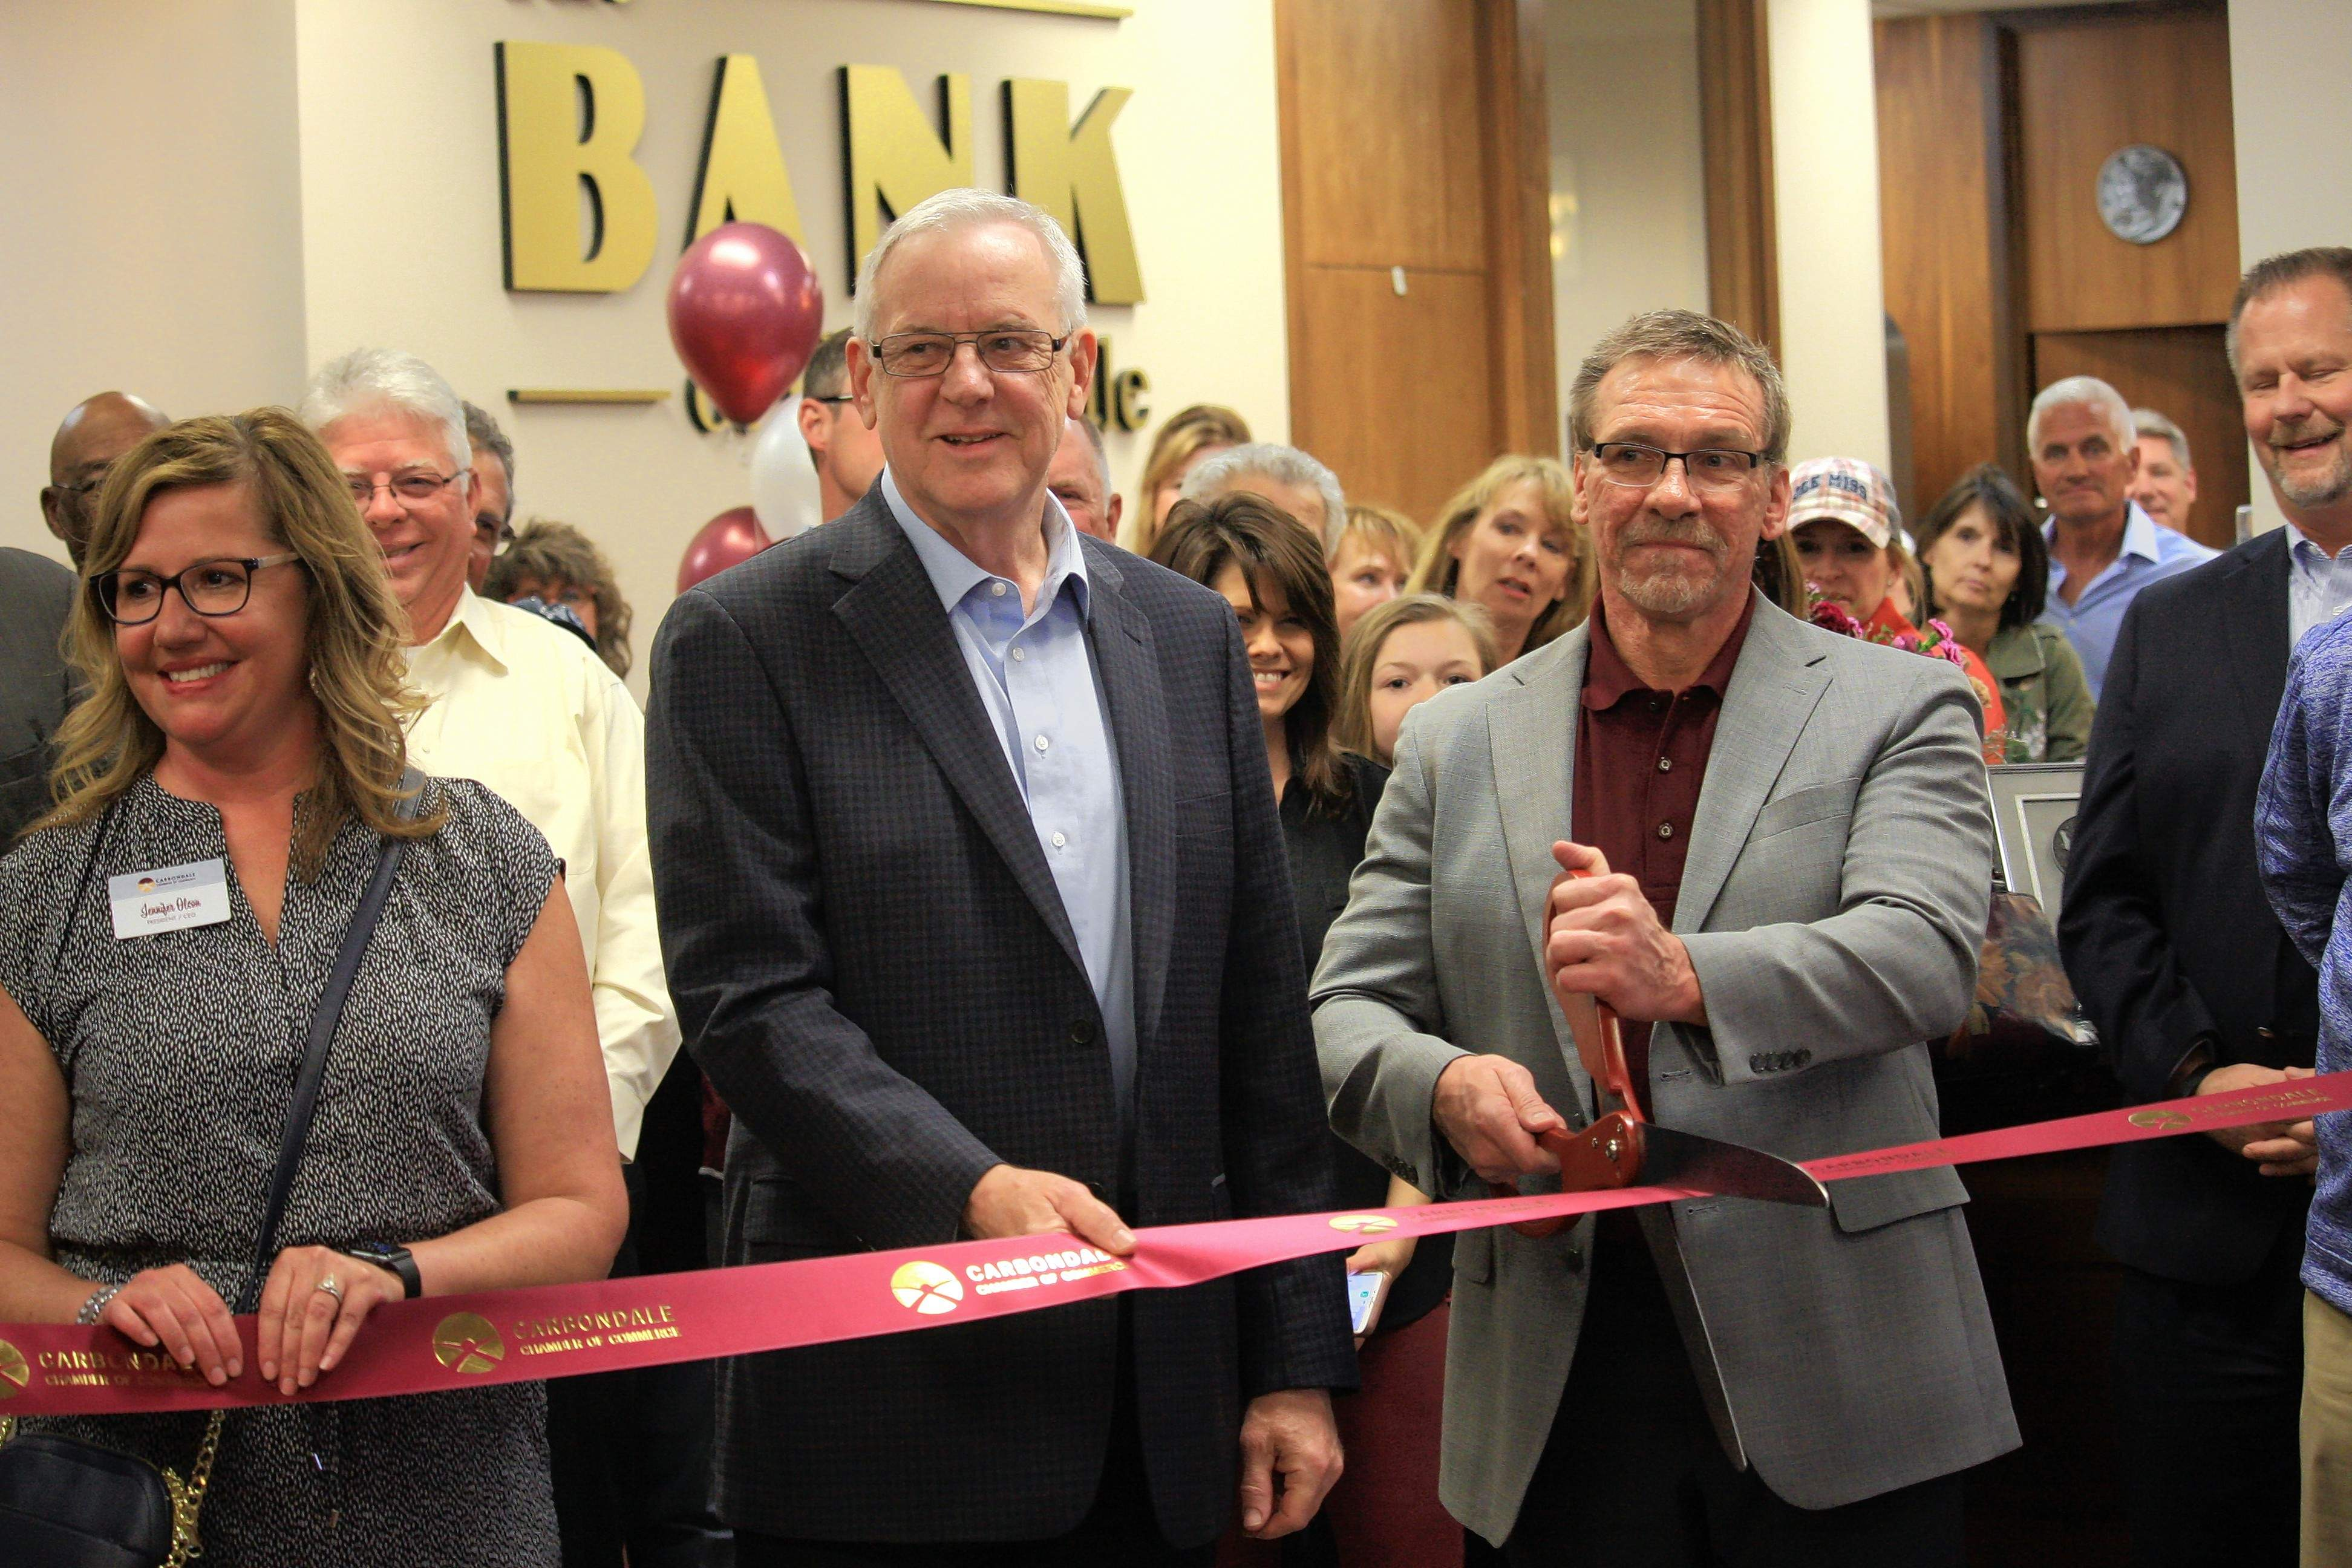 From left to right at last week's celebration are Jennifer Olson, CEO of the Carbondale Chamber of Commerce; Mayor Mike Henry; and Bob Bleyer, president of the Bank of Carbondale.